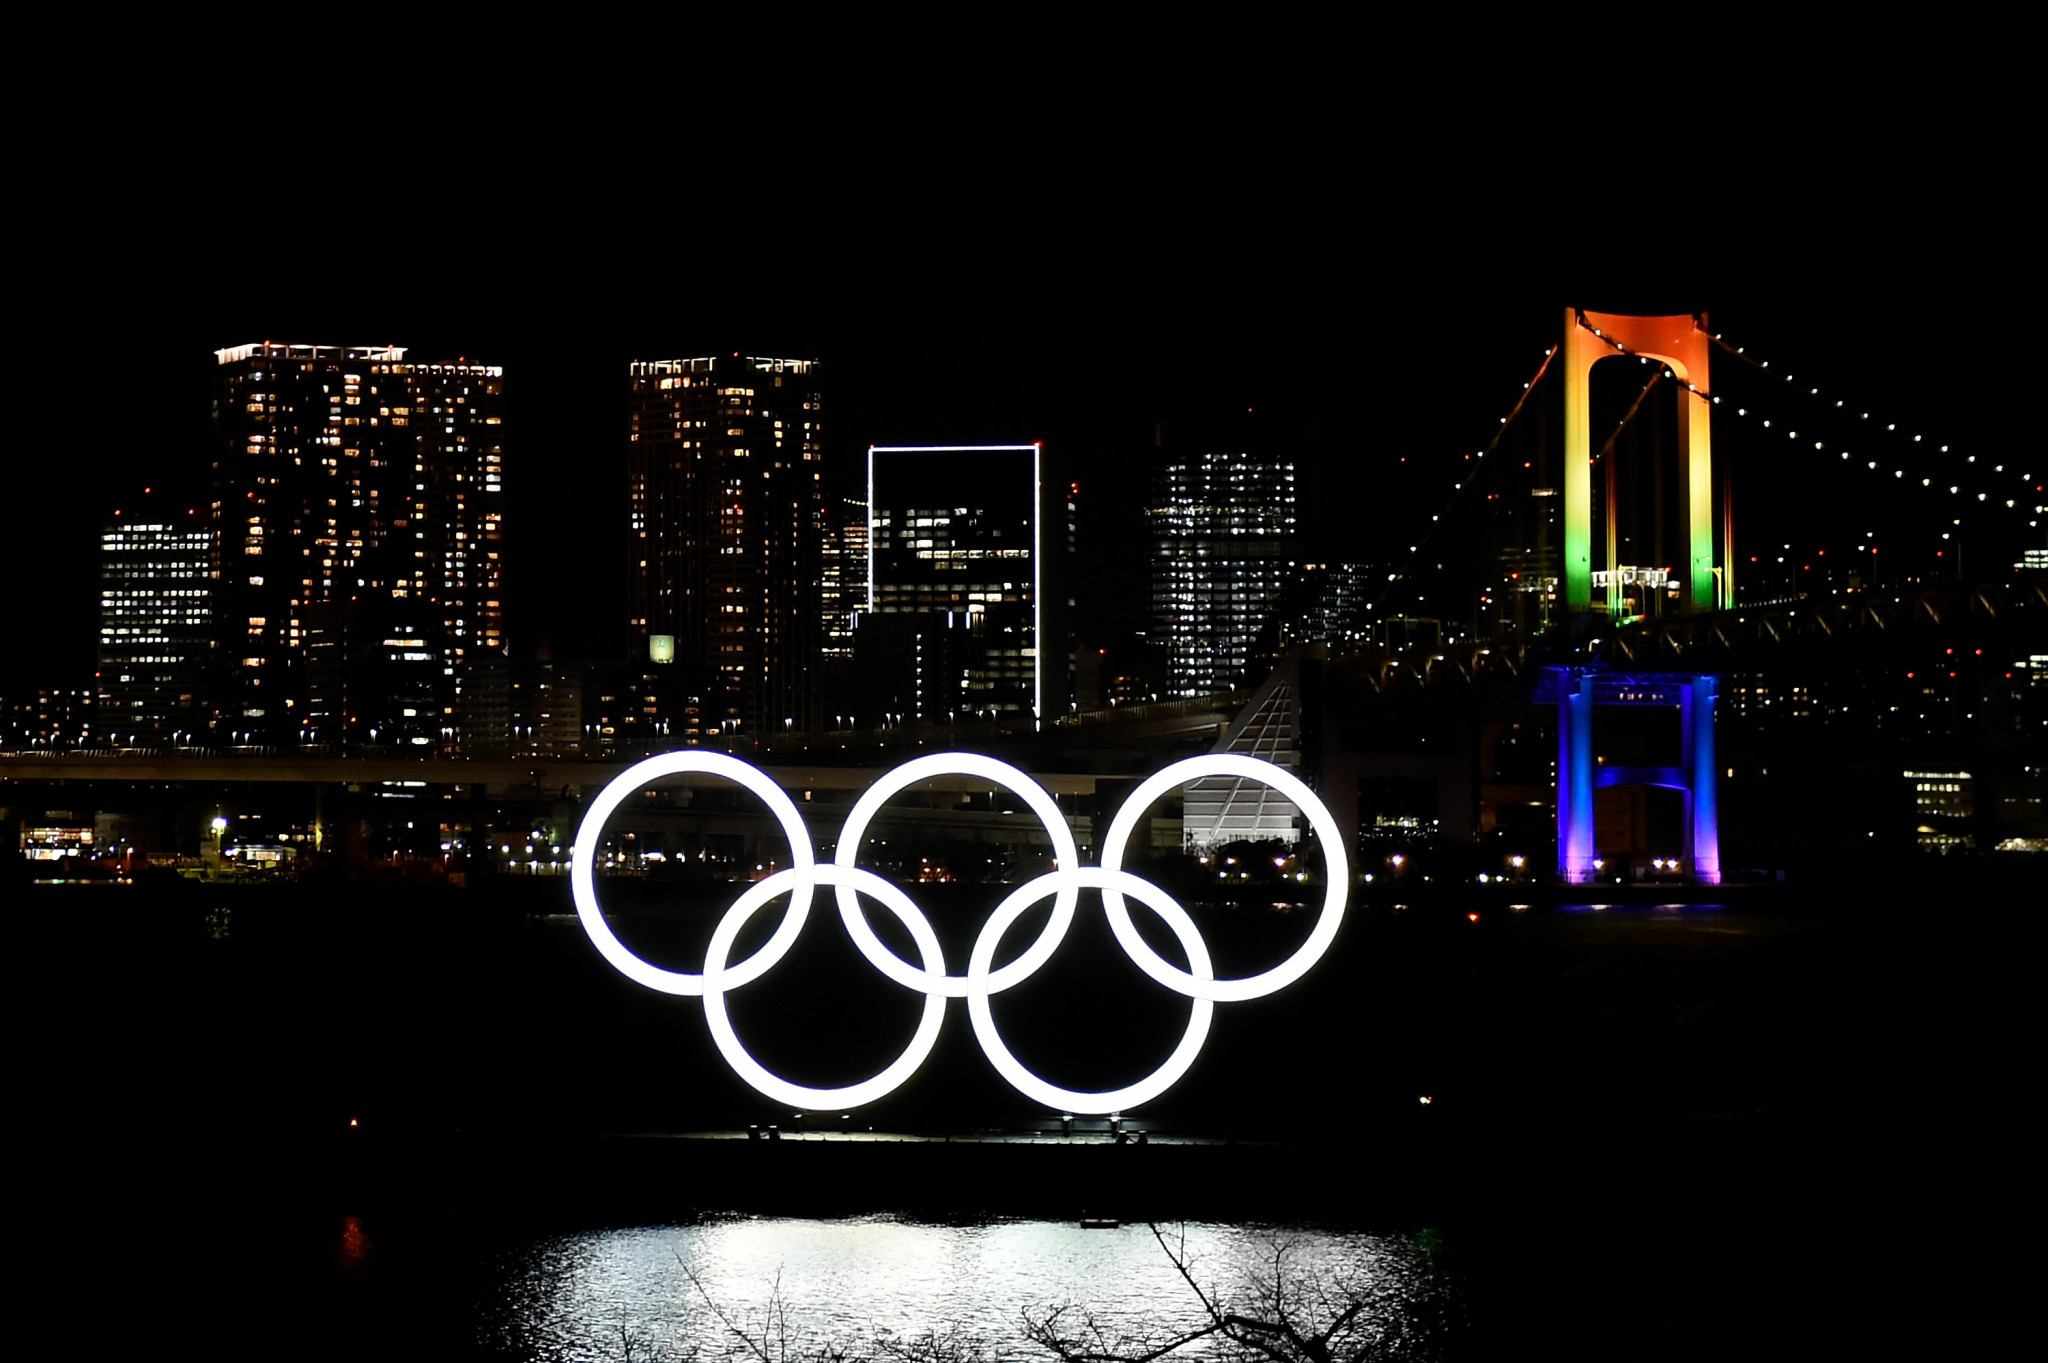 Tokyo marks six months to Olympic Games with fireworks and rings monument lighting